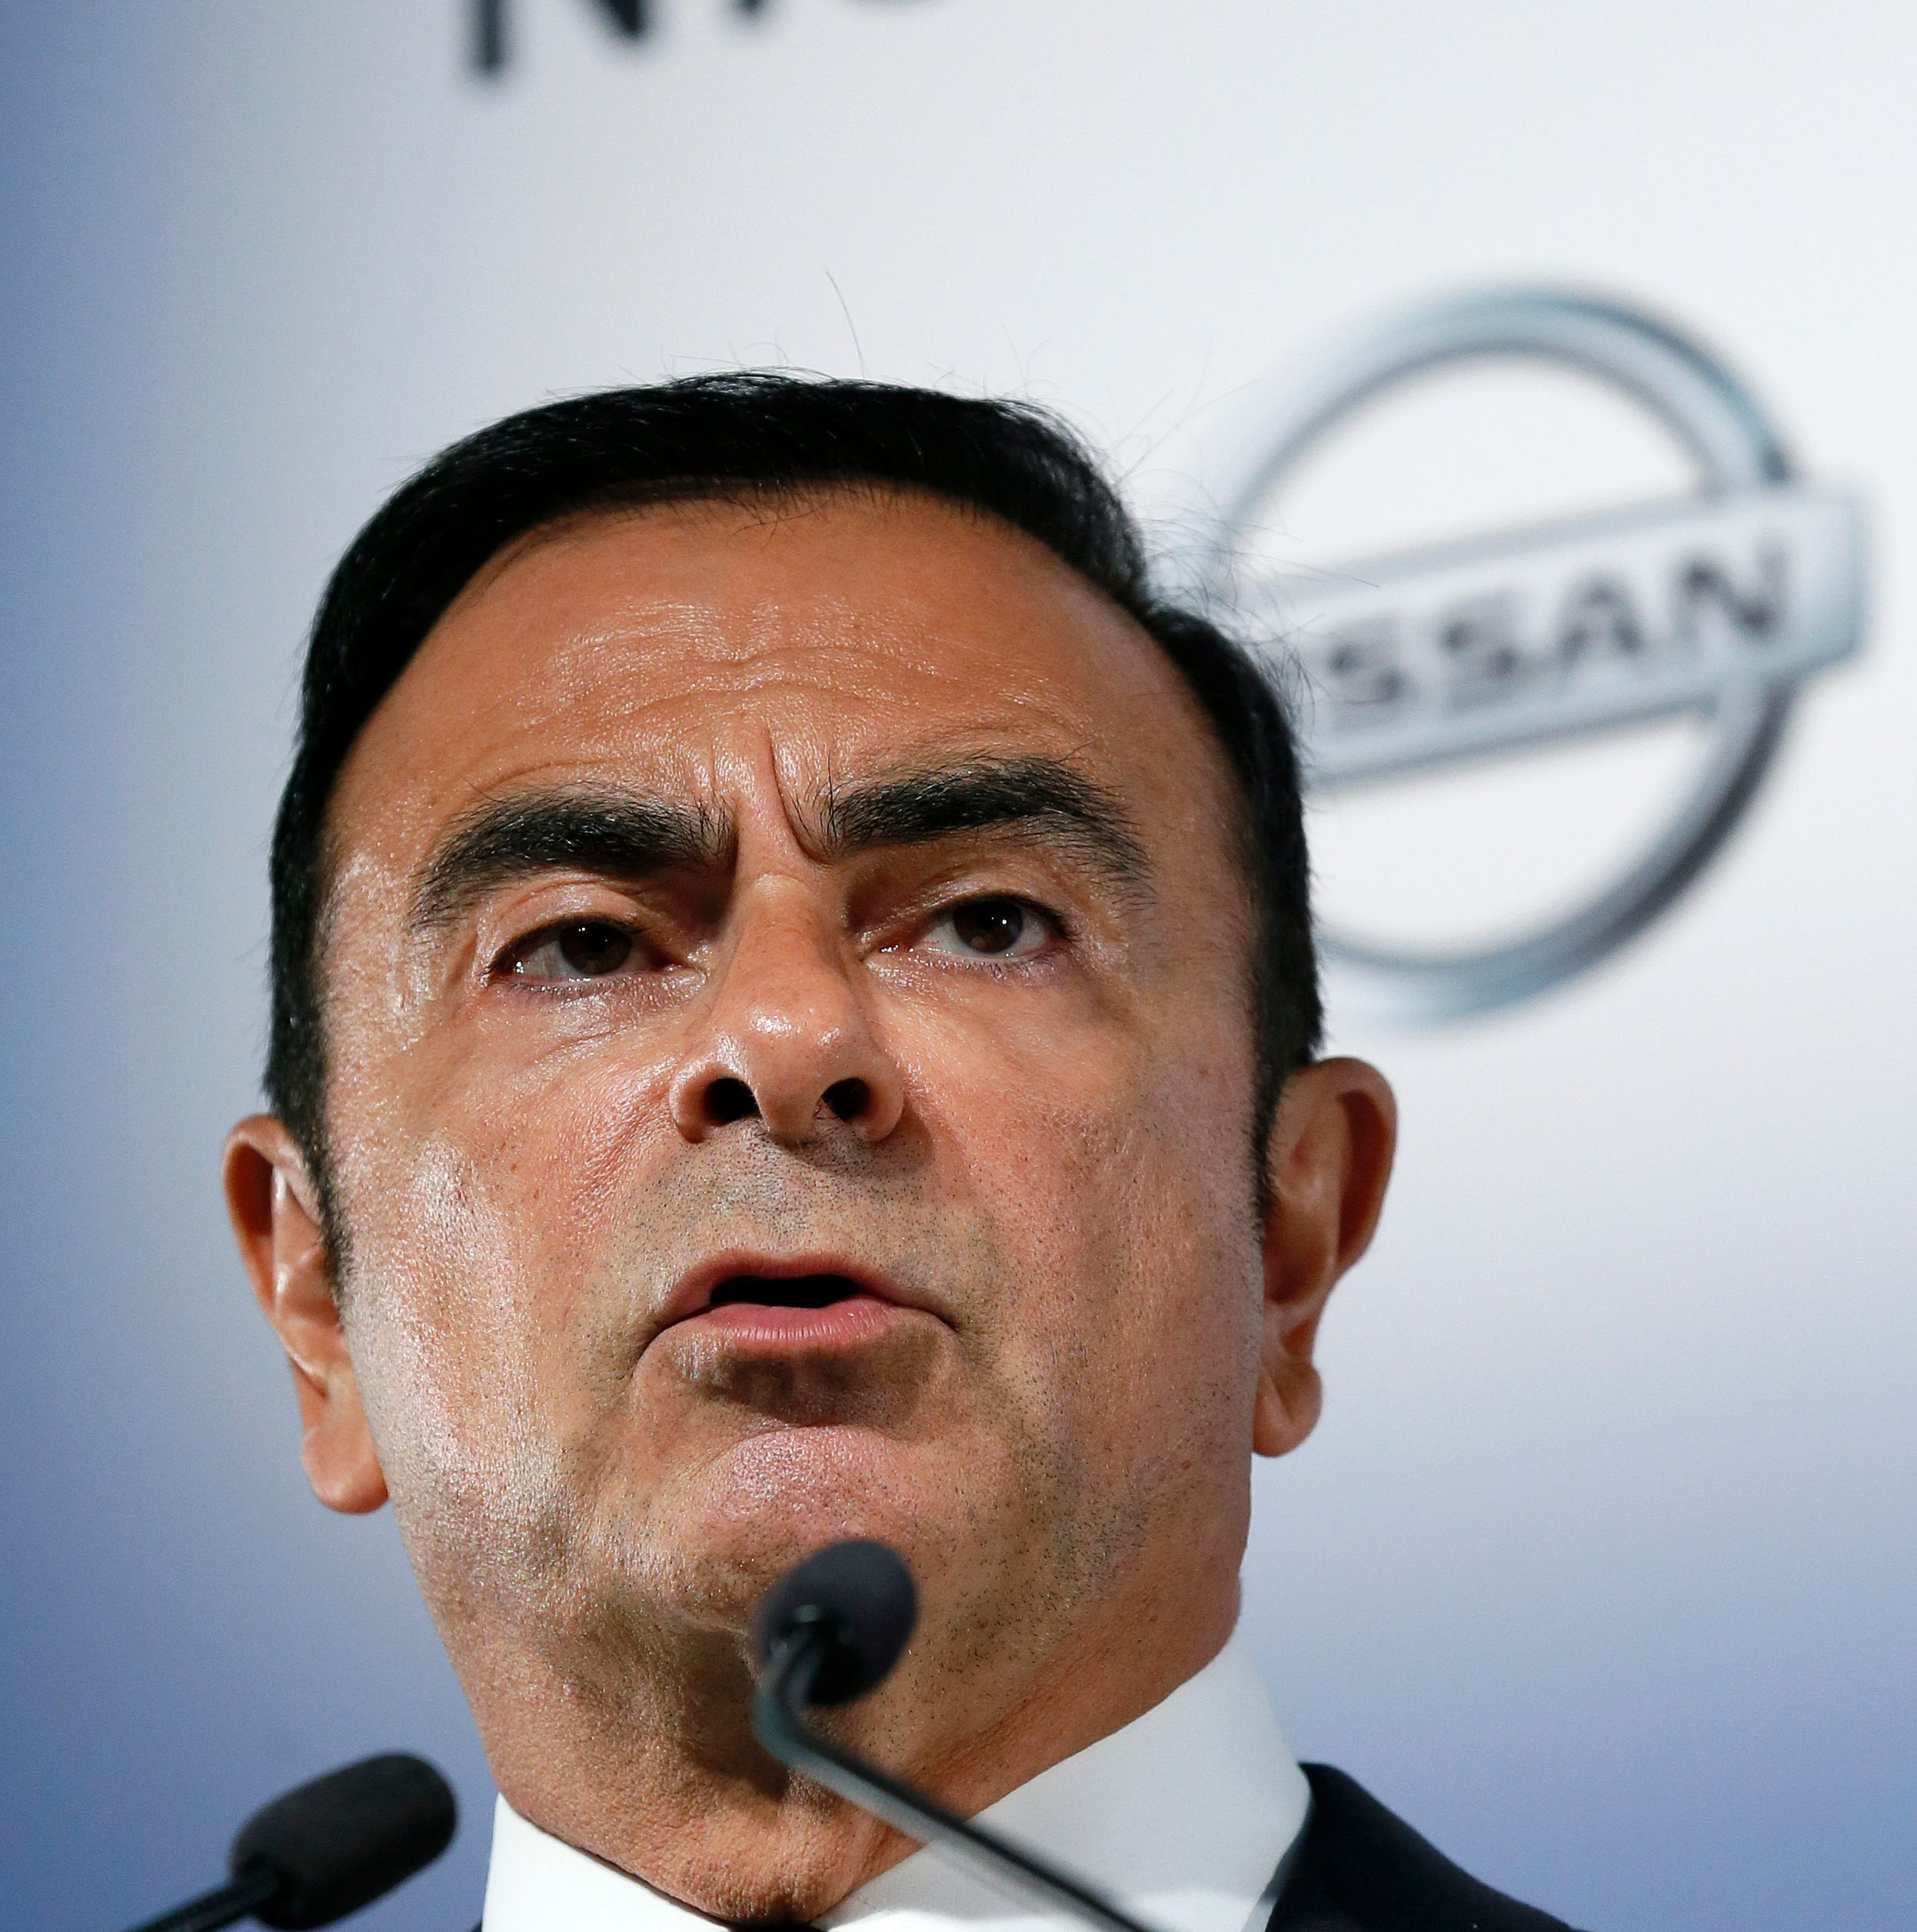 Nissan Motor's chairman Carlos Ghosn speaks at a press conference in Yokohama, south of Tokyo, Japan, 12 May 2014 (reissued 10 December 2018).